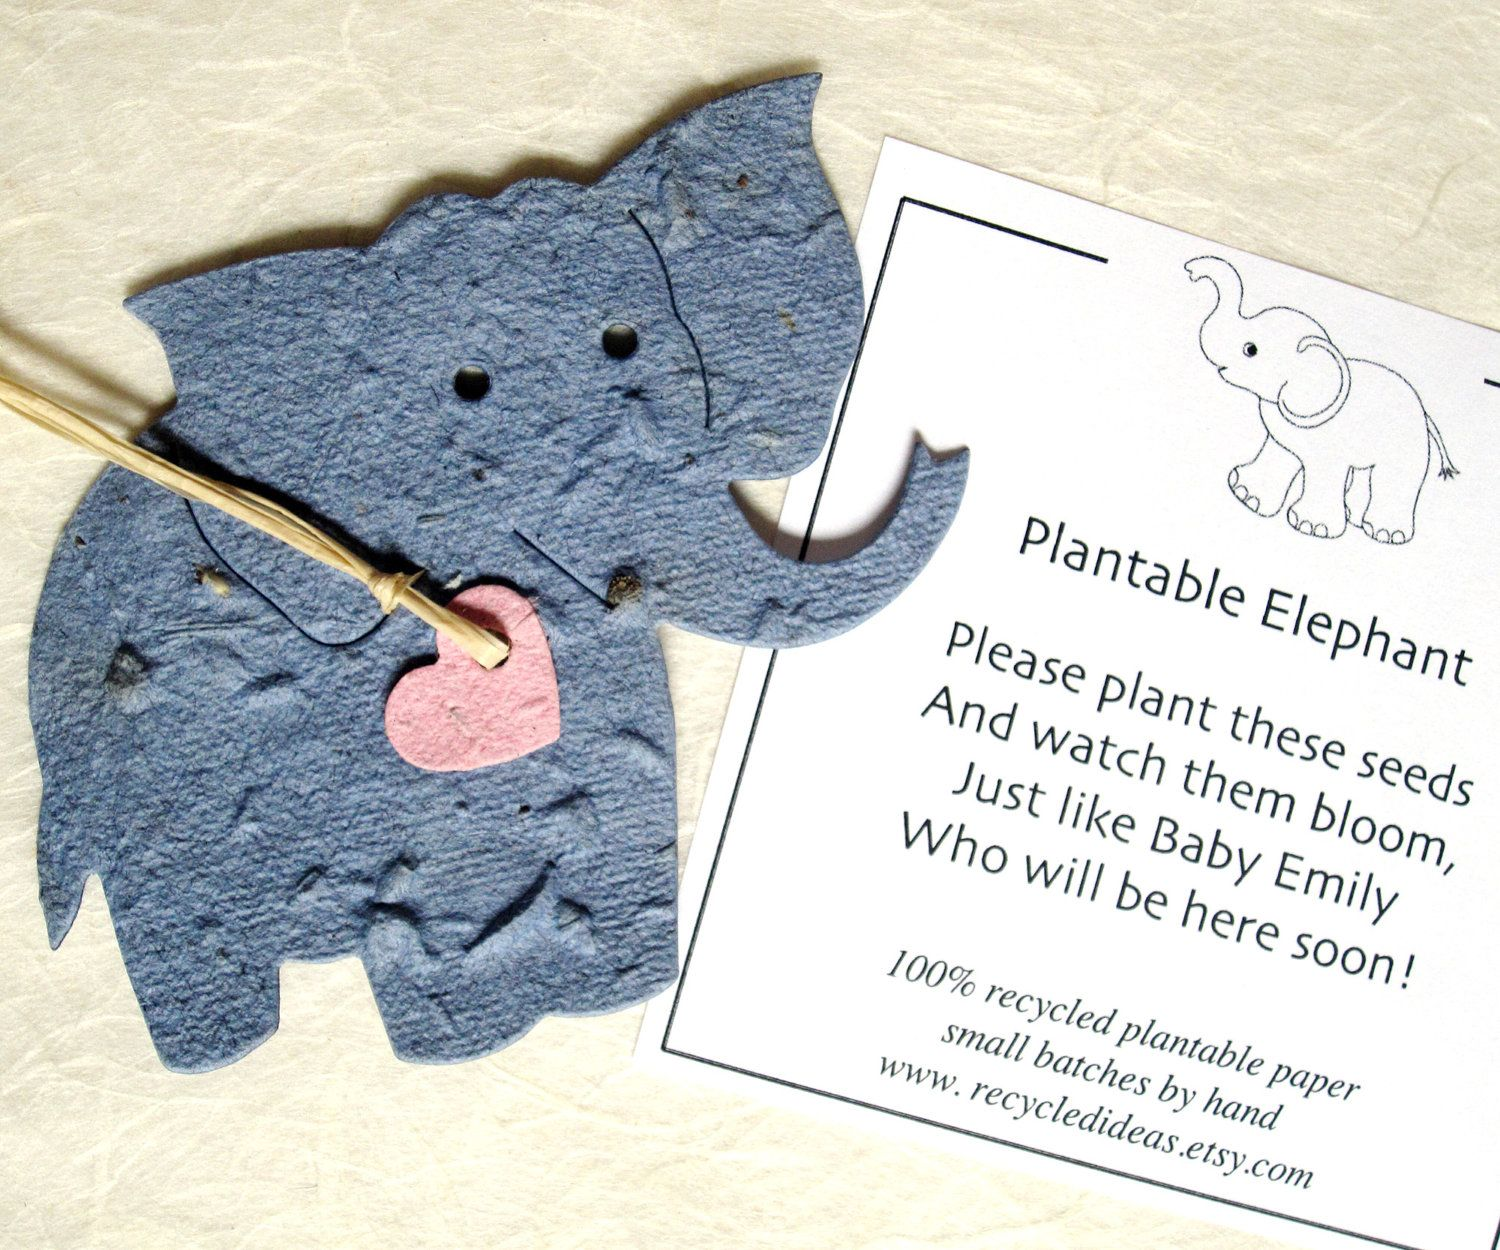 25 Plantable Elephant Baby Shower Favors - Flower Seed Paper ...